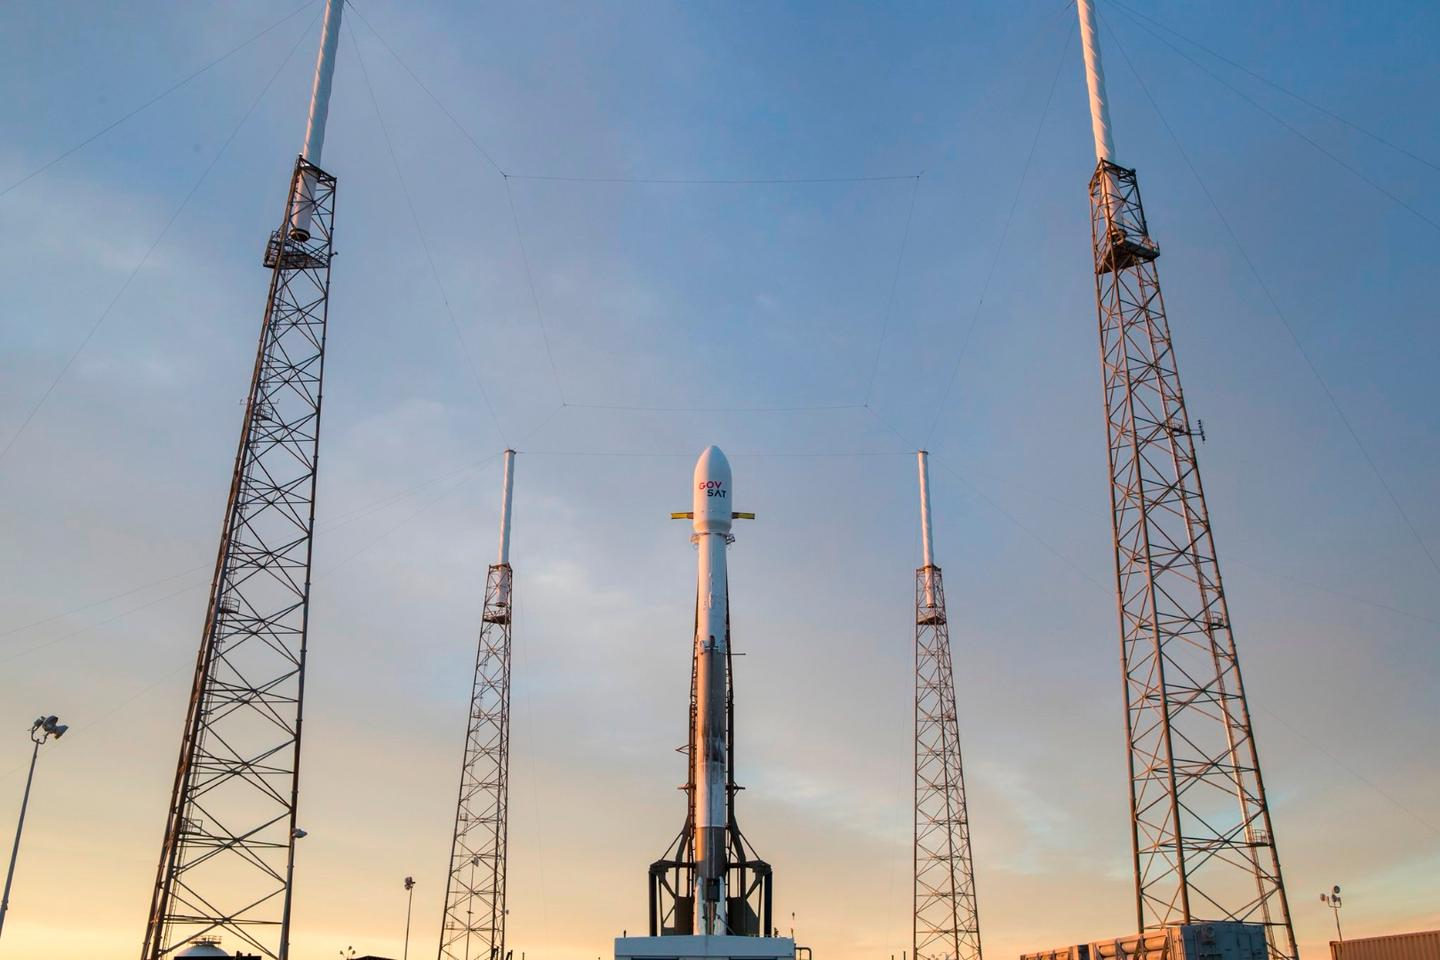 SpaceX's Falcon 9 rocket sits on the launchpad ahead of liftoff